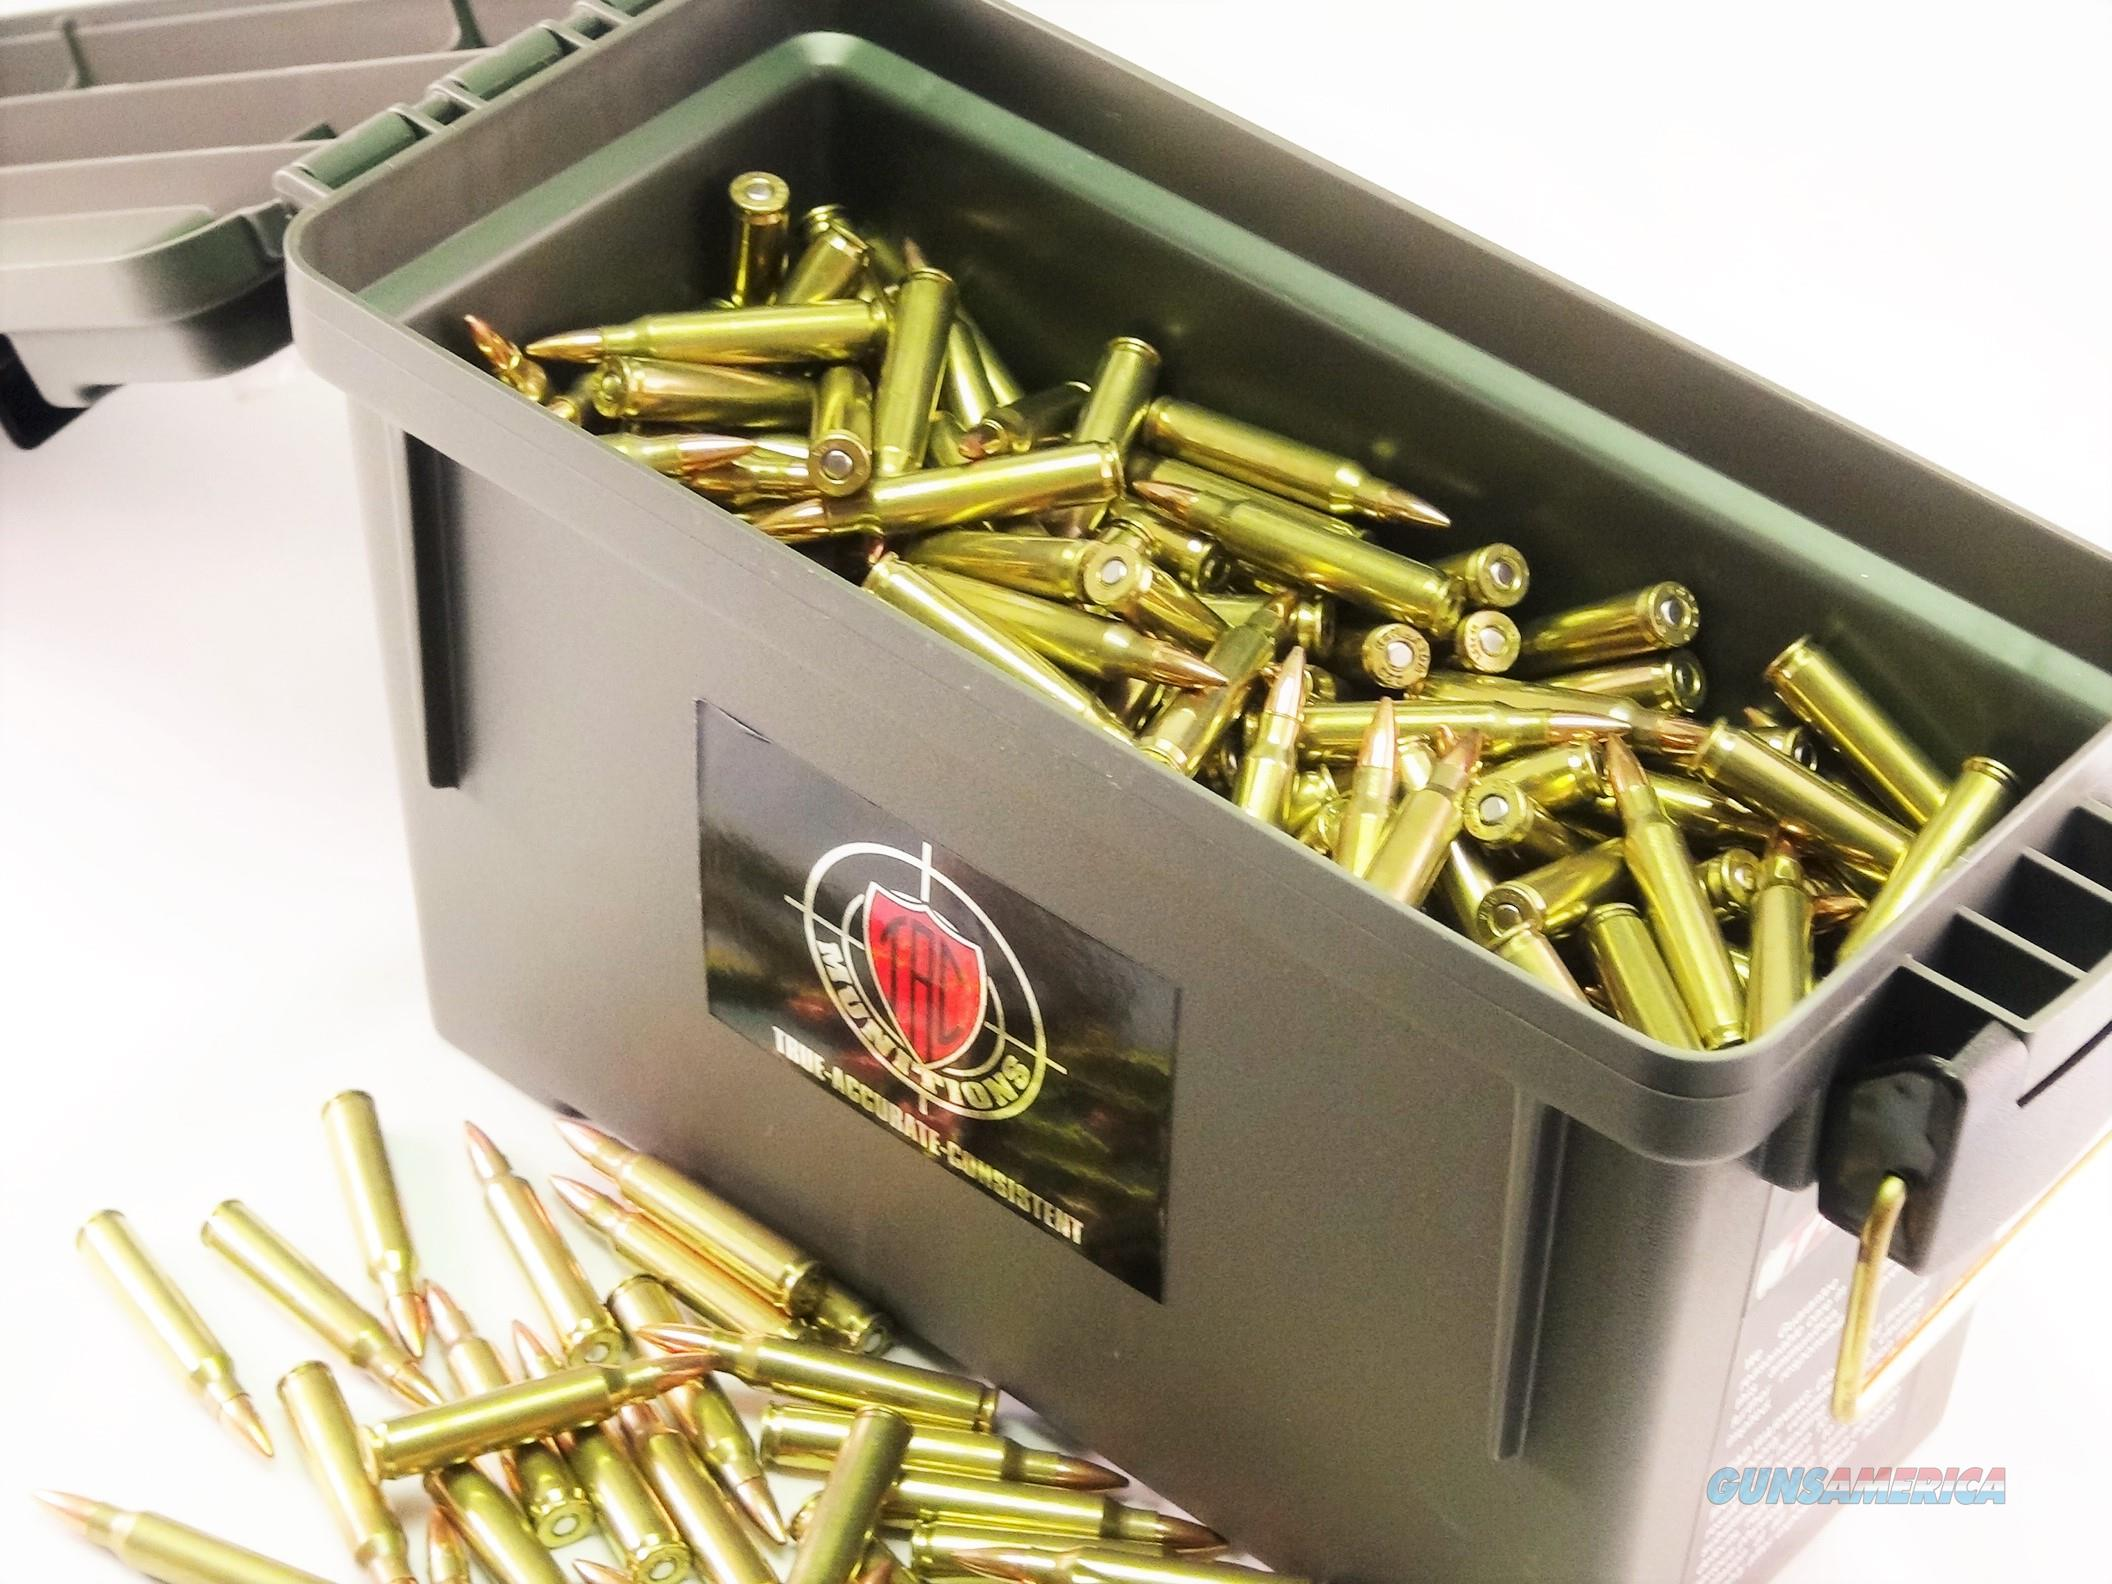 TAC Ammo .223 FMJ-BT 55grain - 500 Rounds  Non-Guns > Ammunition